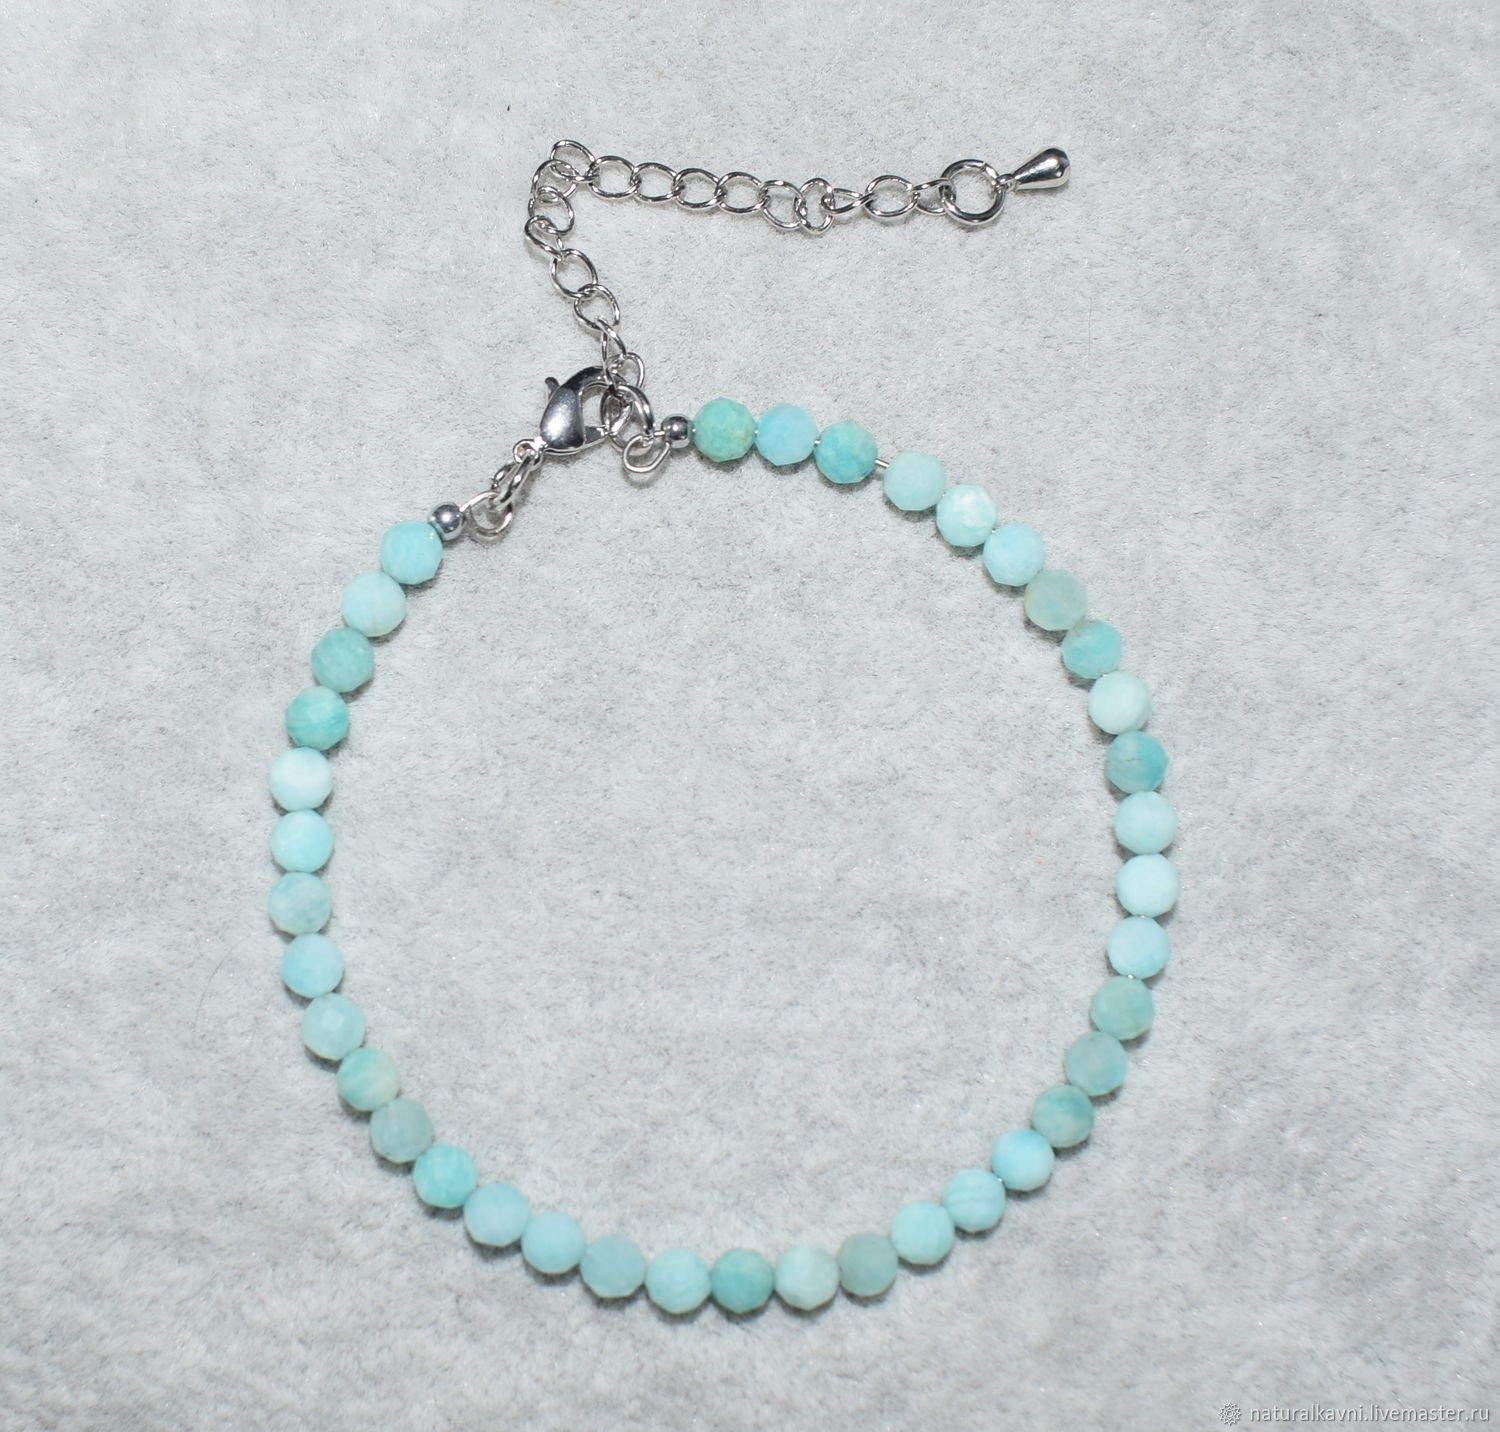 Delicate bracelet with natural amazonite cut, Bead bracelet, Moscow,  Фото №1